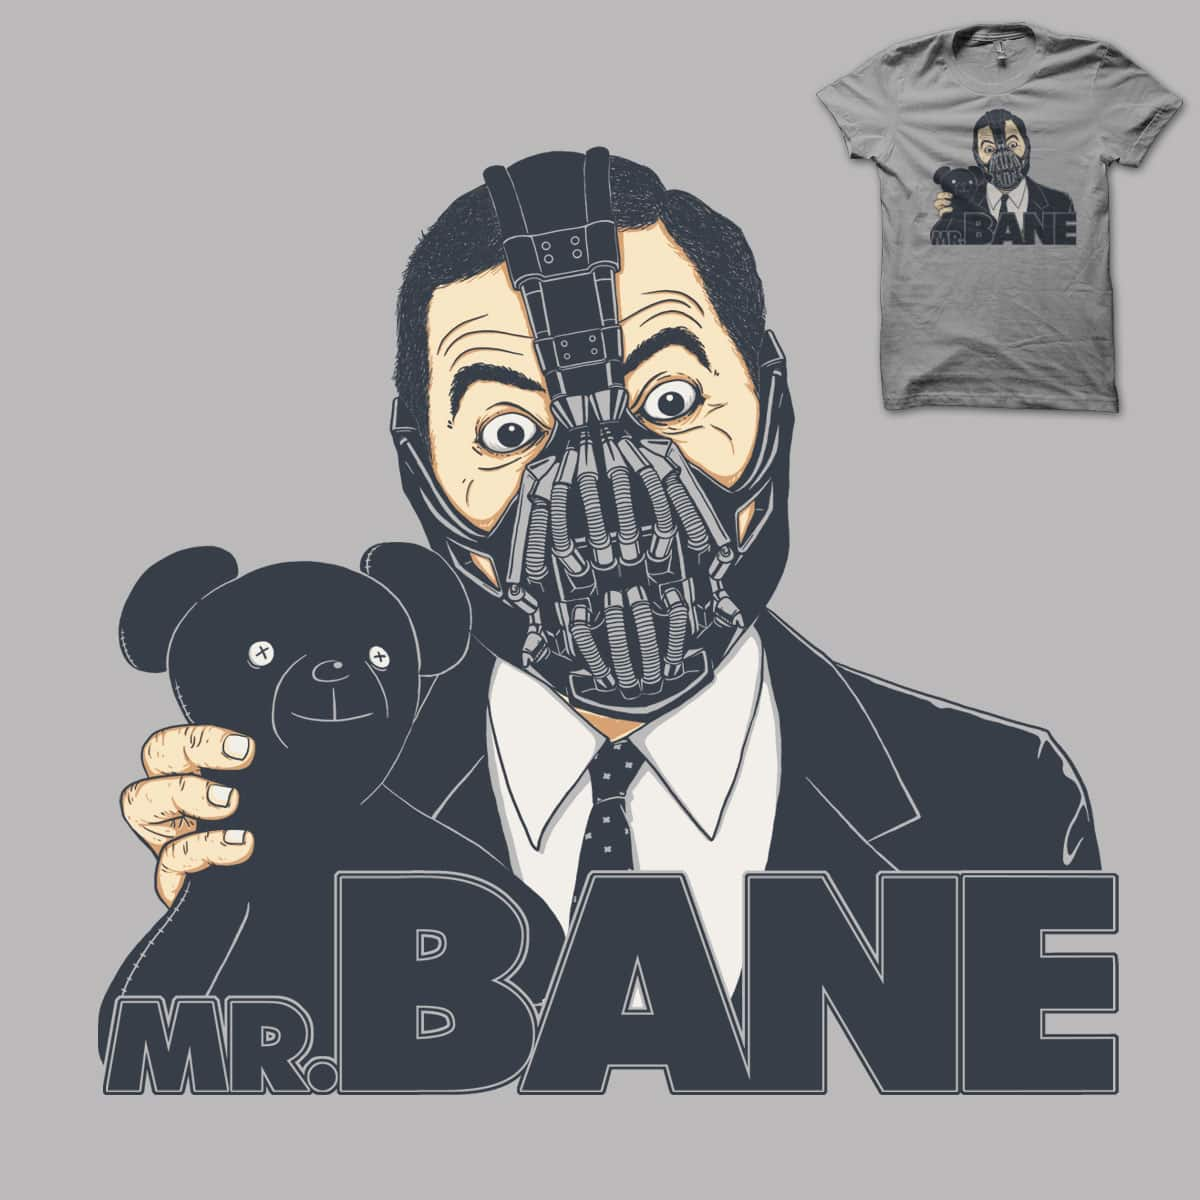 Mr. Bane by triagus on Threadless